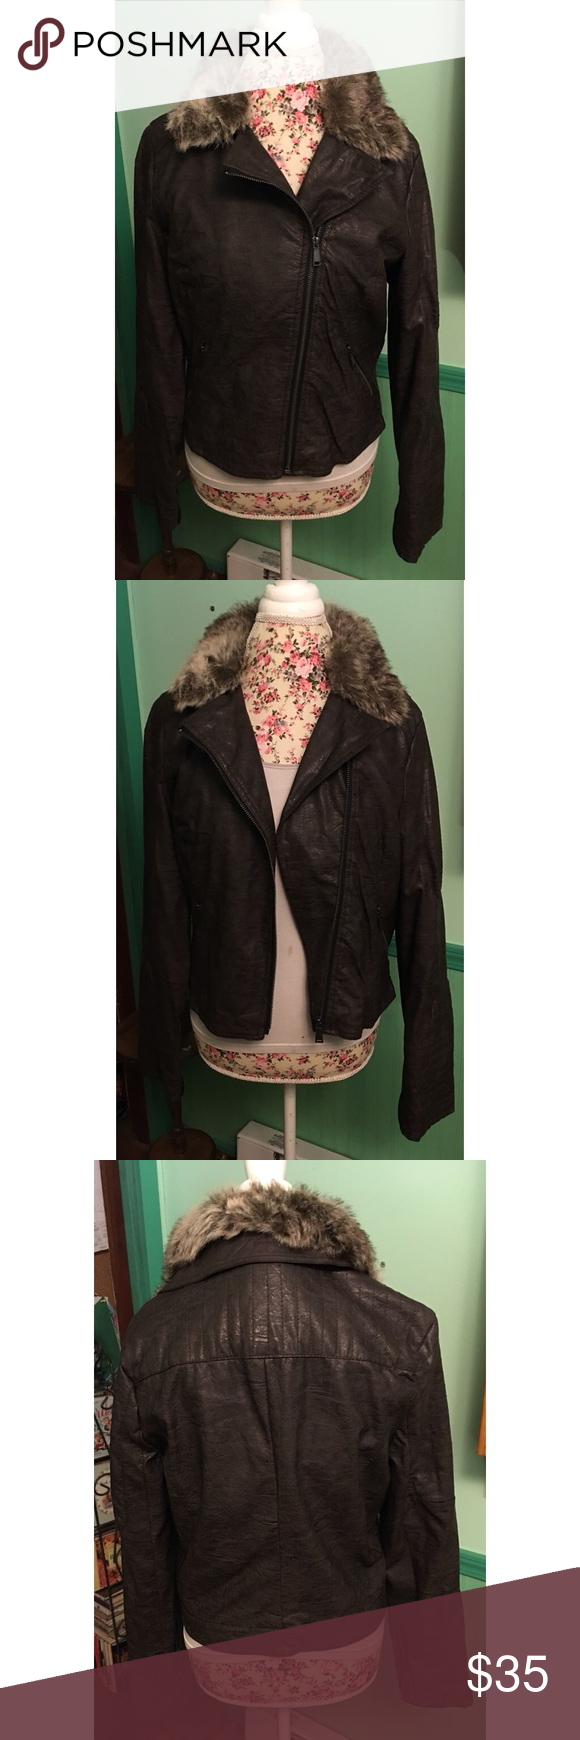 NEW WOMENS SEVENTH AVENUE BROWN  PLEATHER FAUX FUR COLLAR JACKET SIZE LARGE